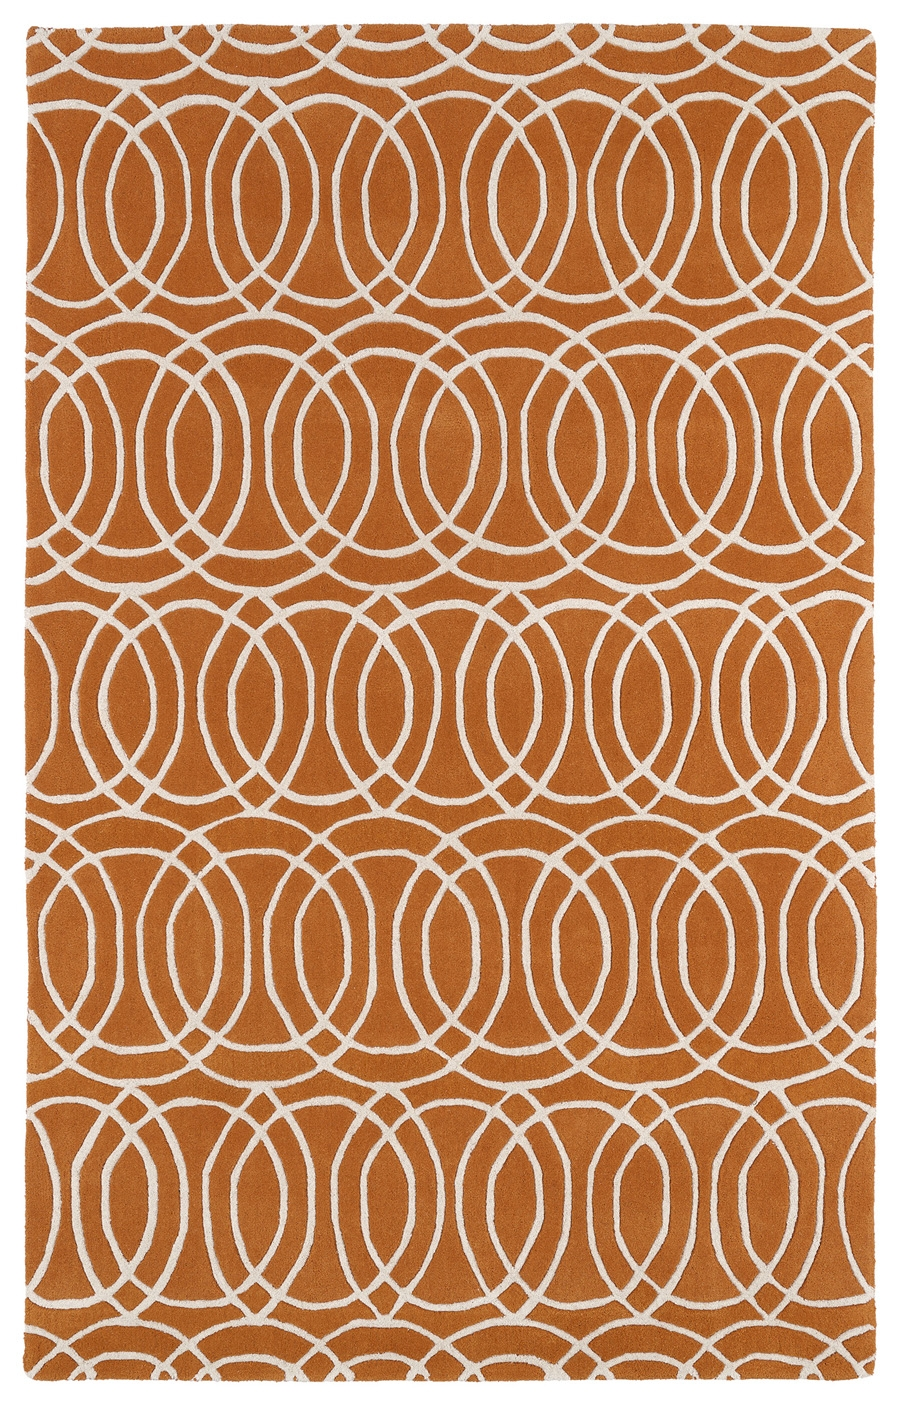 Kaleen Revolution REV02 89 Orange Rug